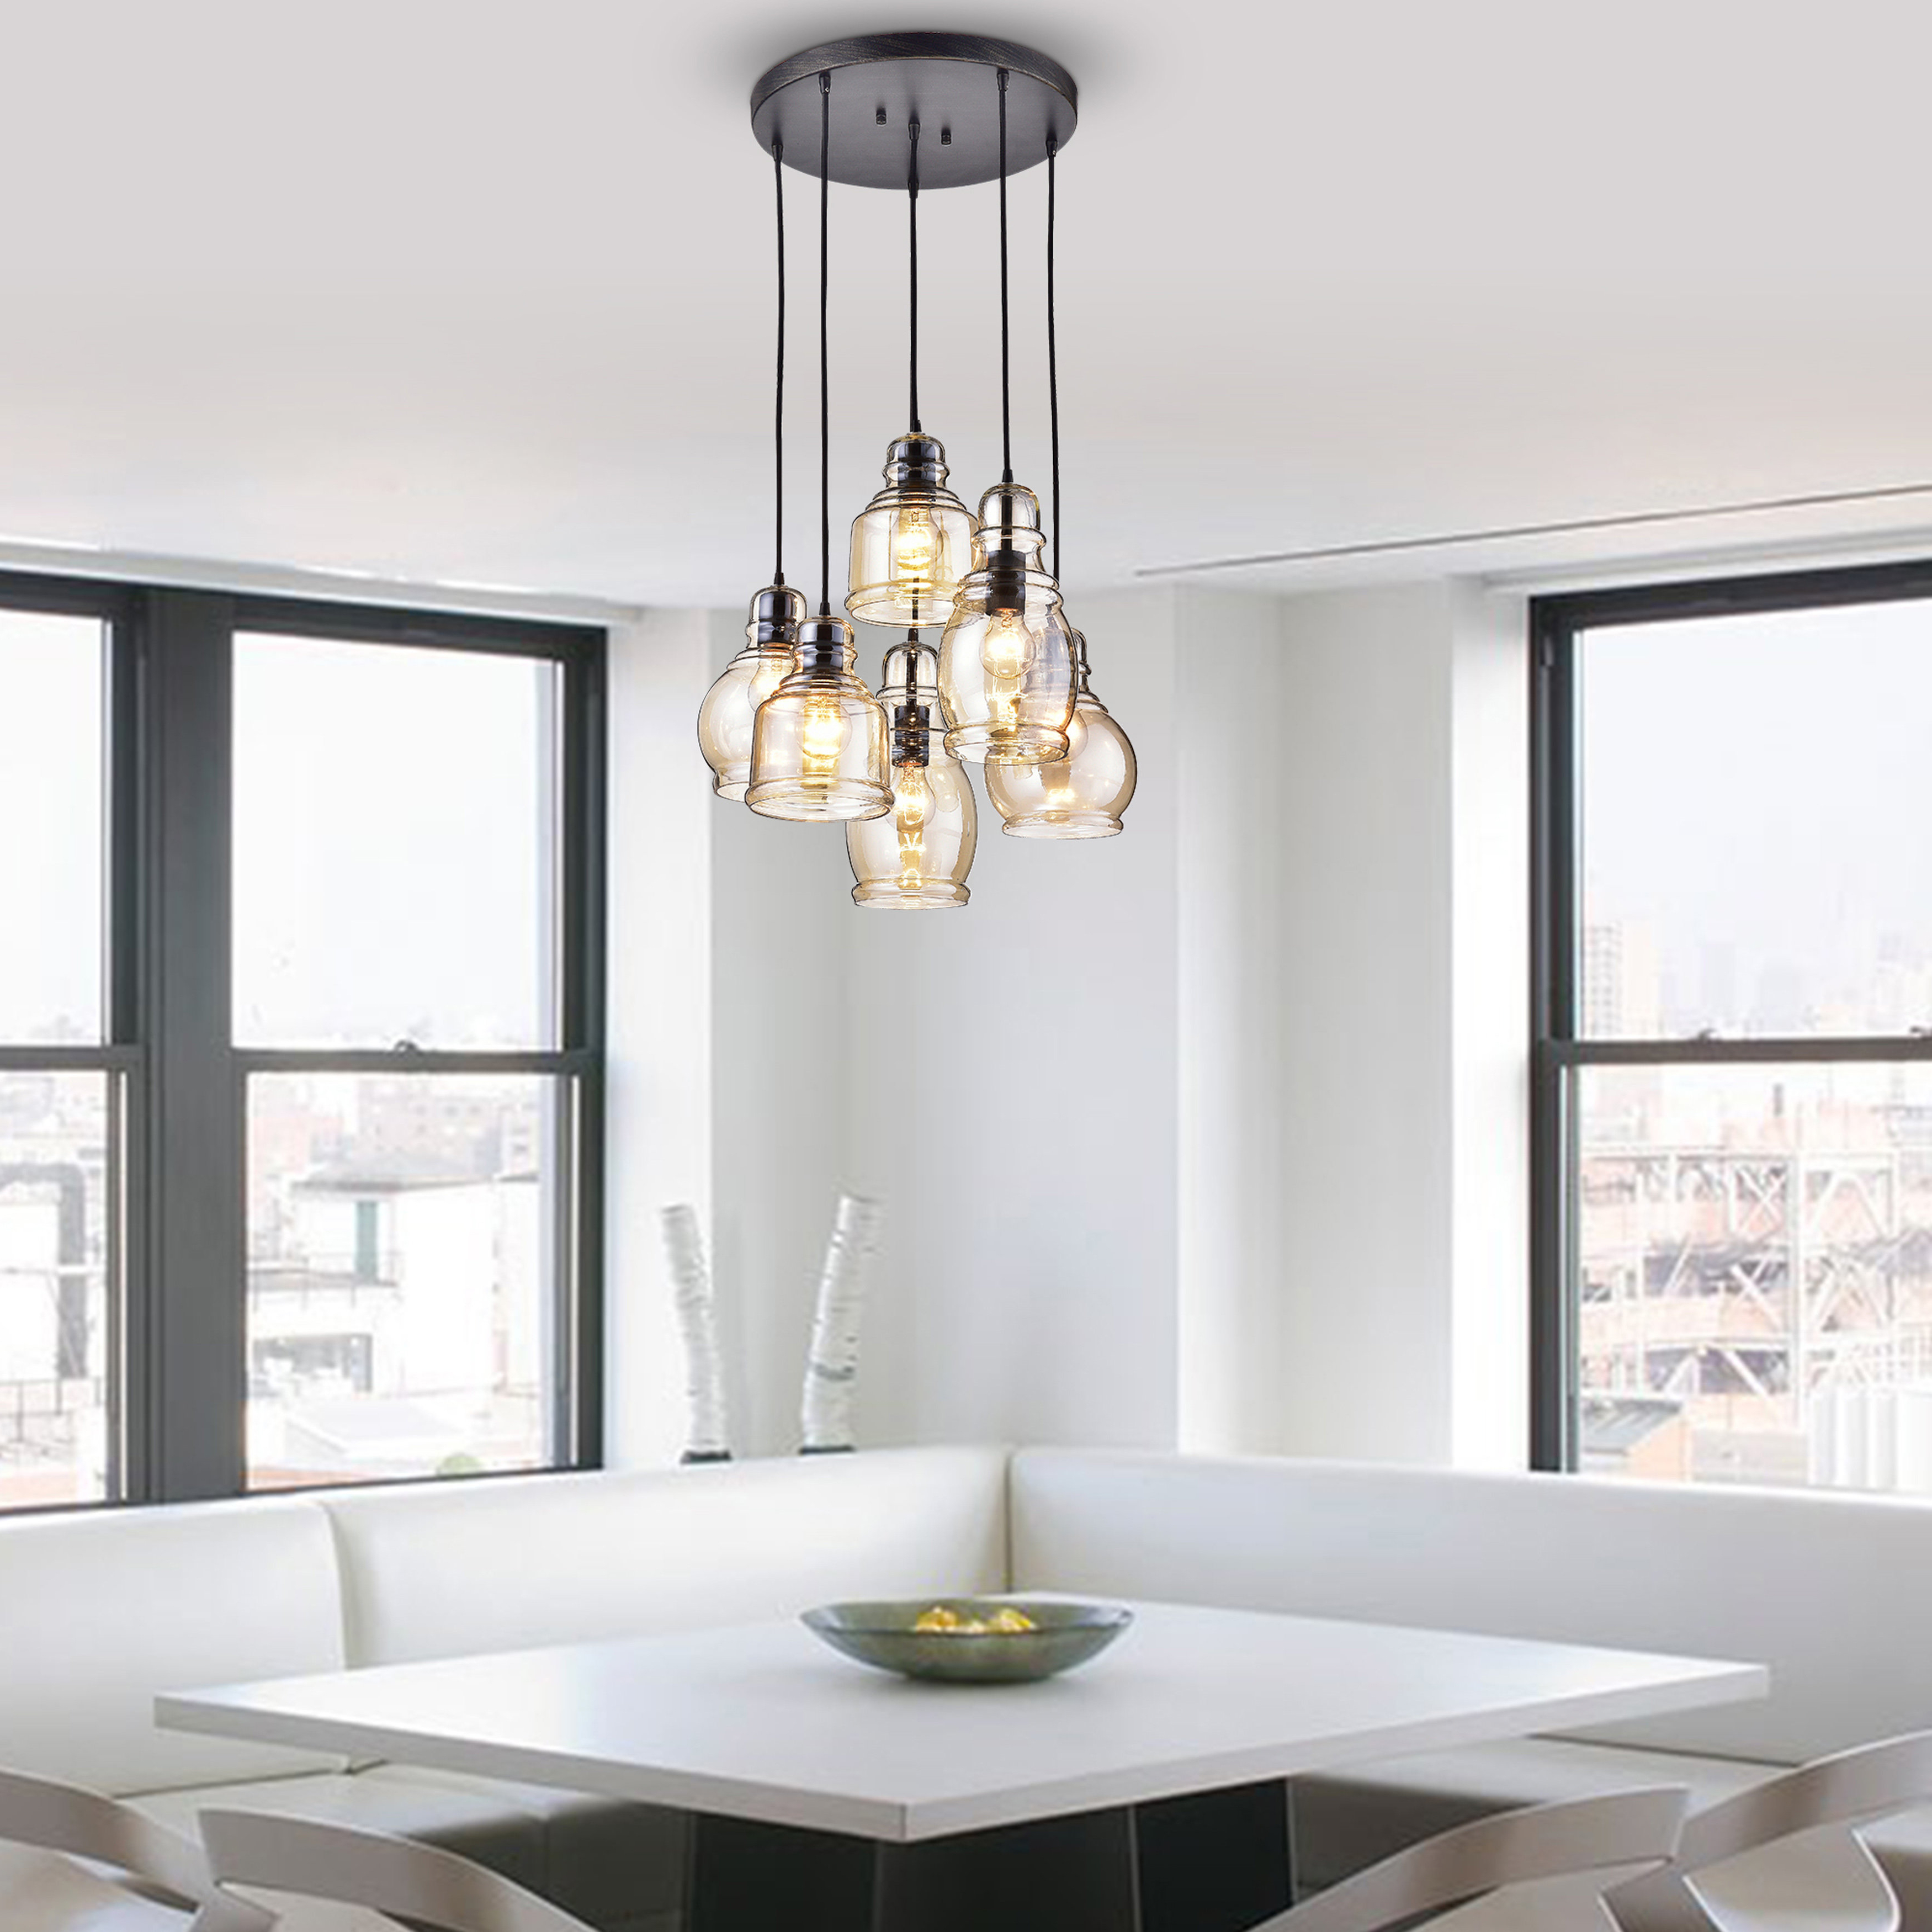 Well Known Schutt 5 Light Cluster Pendants In 4 – 6 Light Cluster Pendant Lighting You'll Love In 2019 (Gallery 5 of 20)